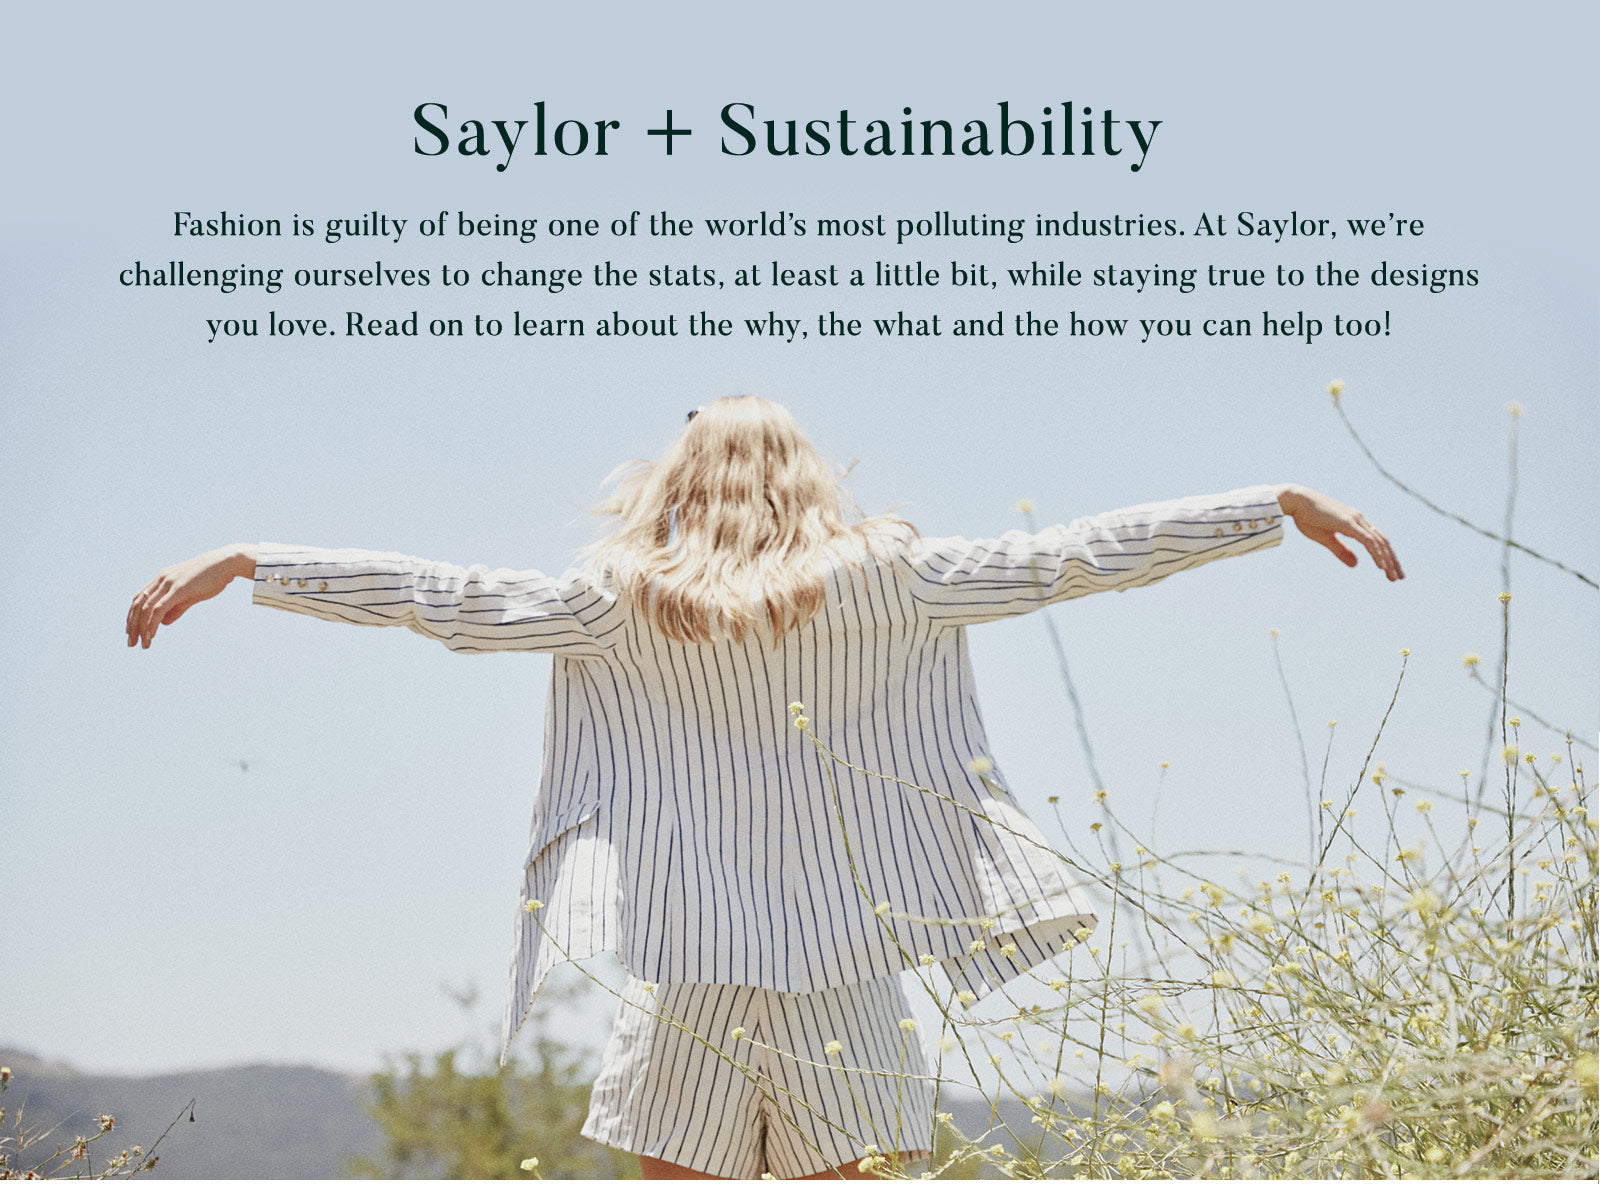 Saylor + Sustainability